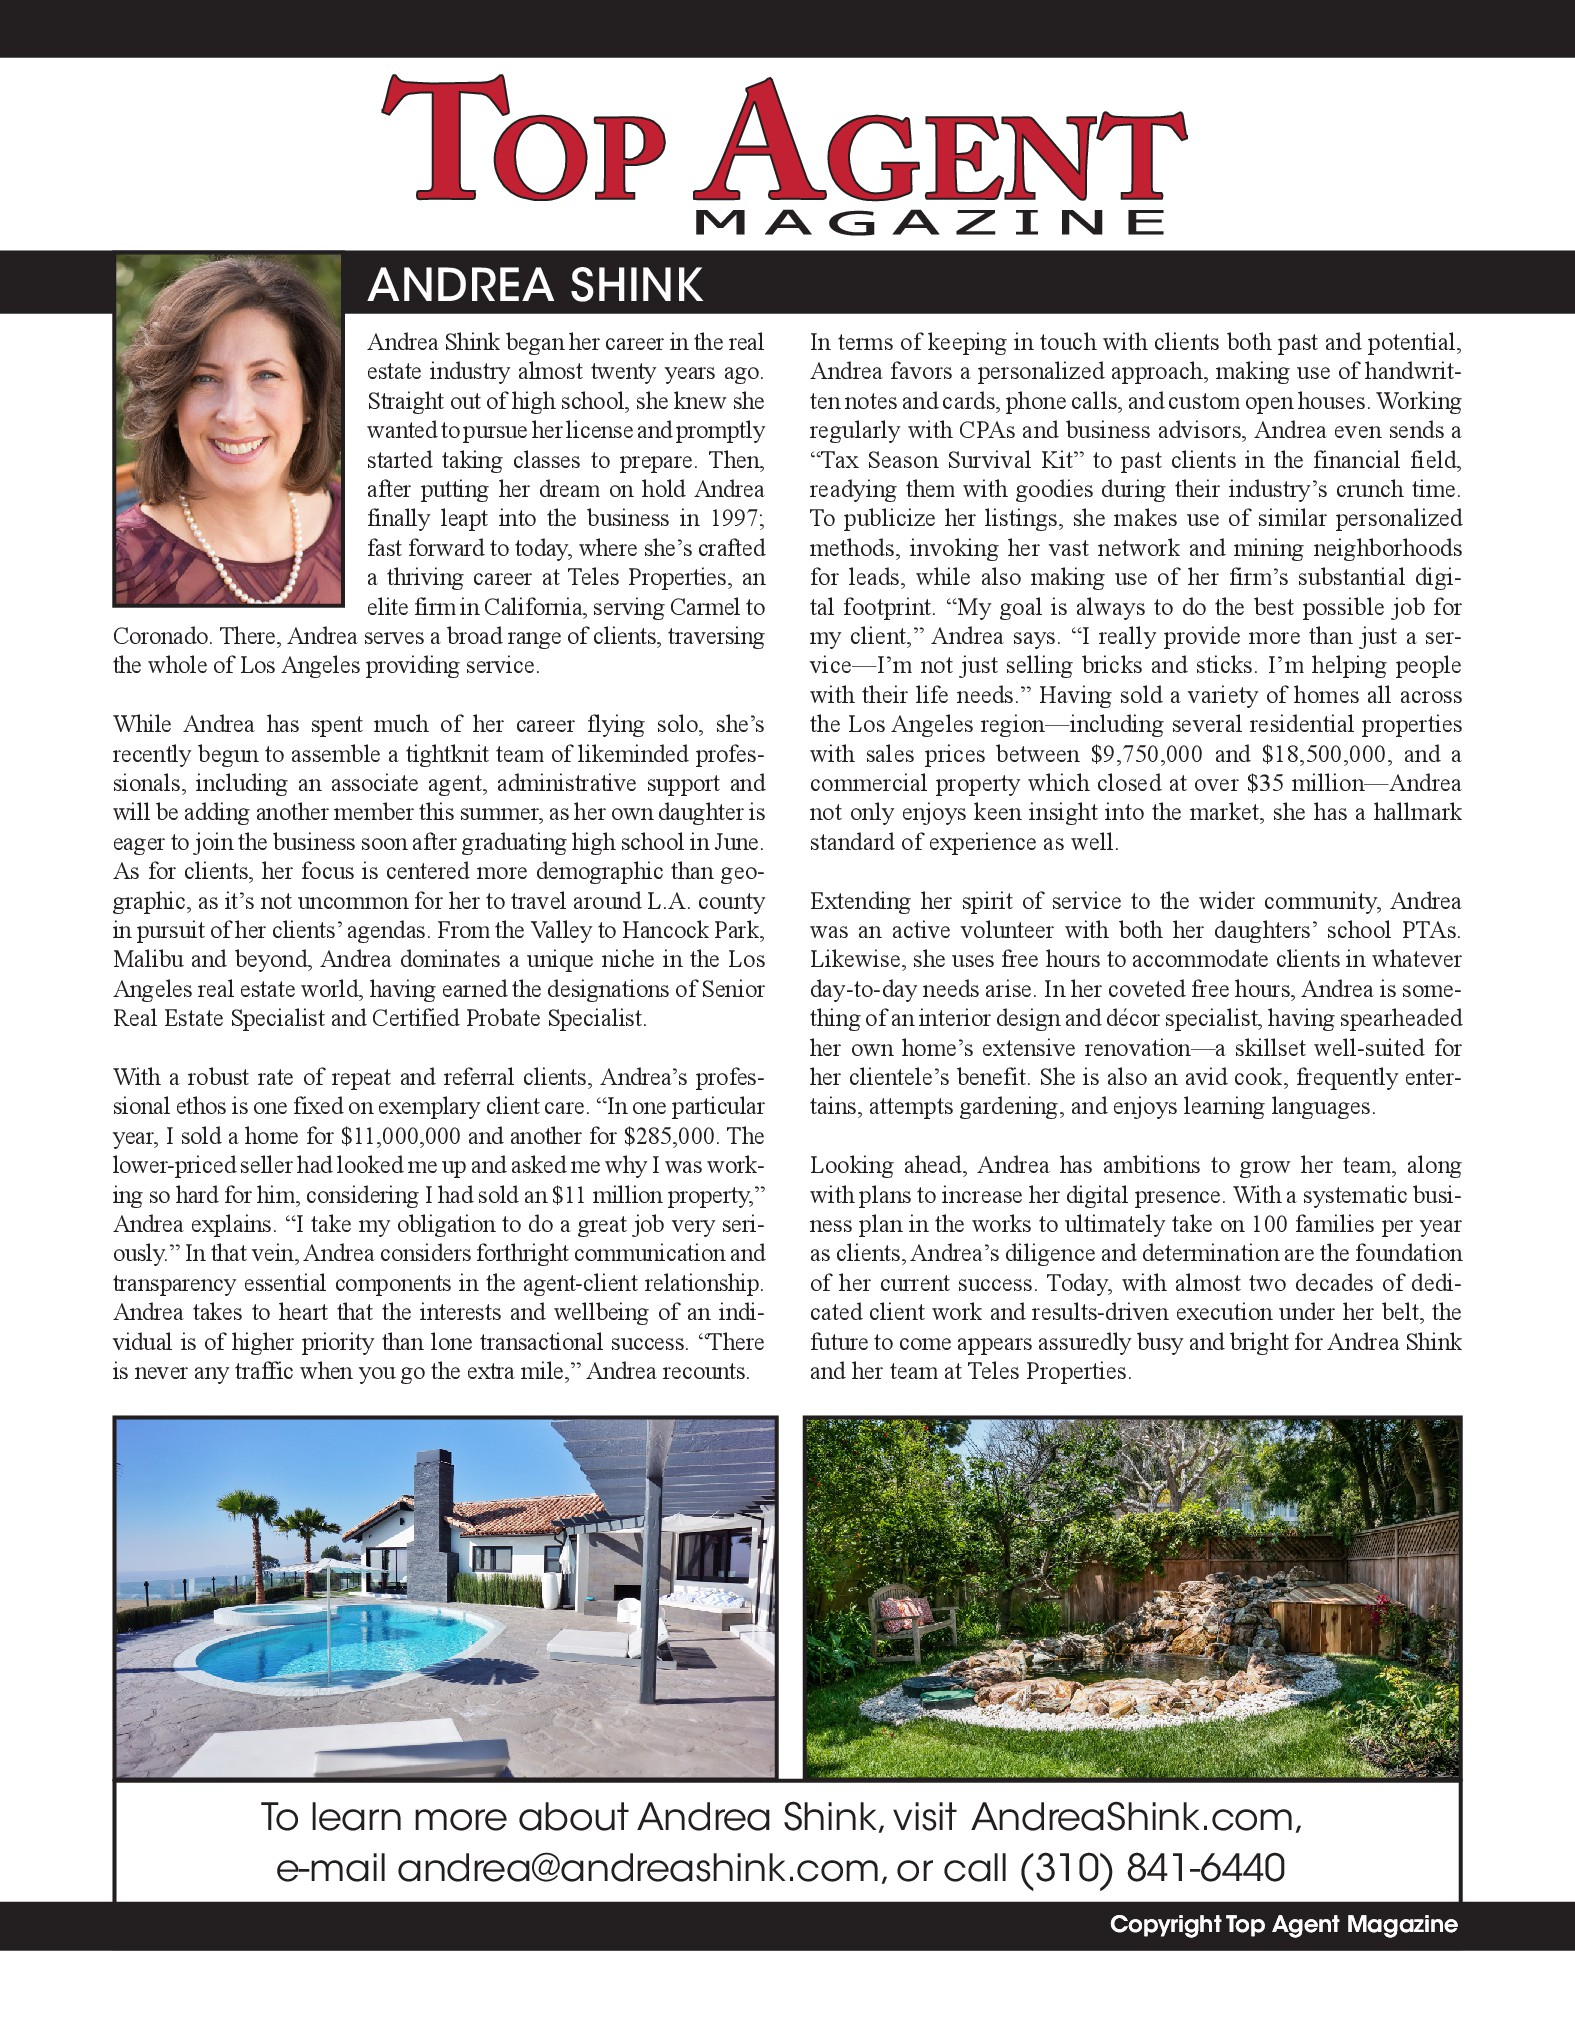 Image of Top Agent Article where Andrea Shink was featured.